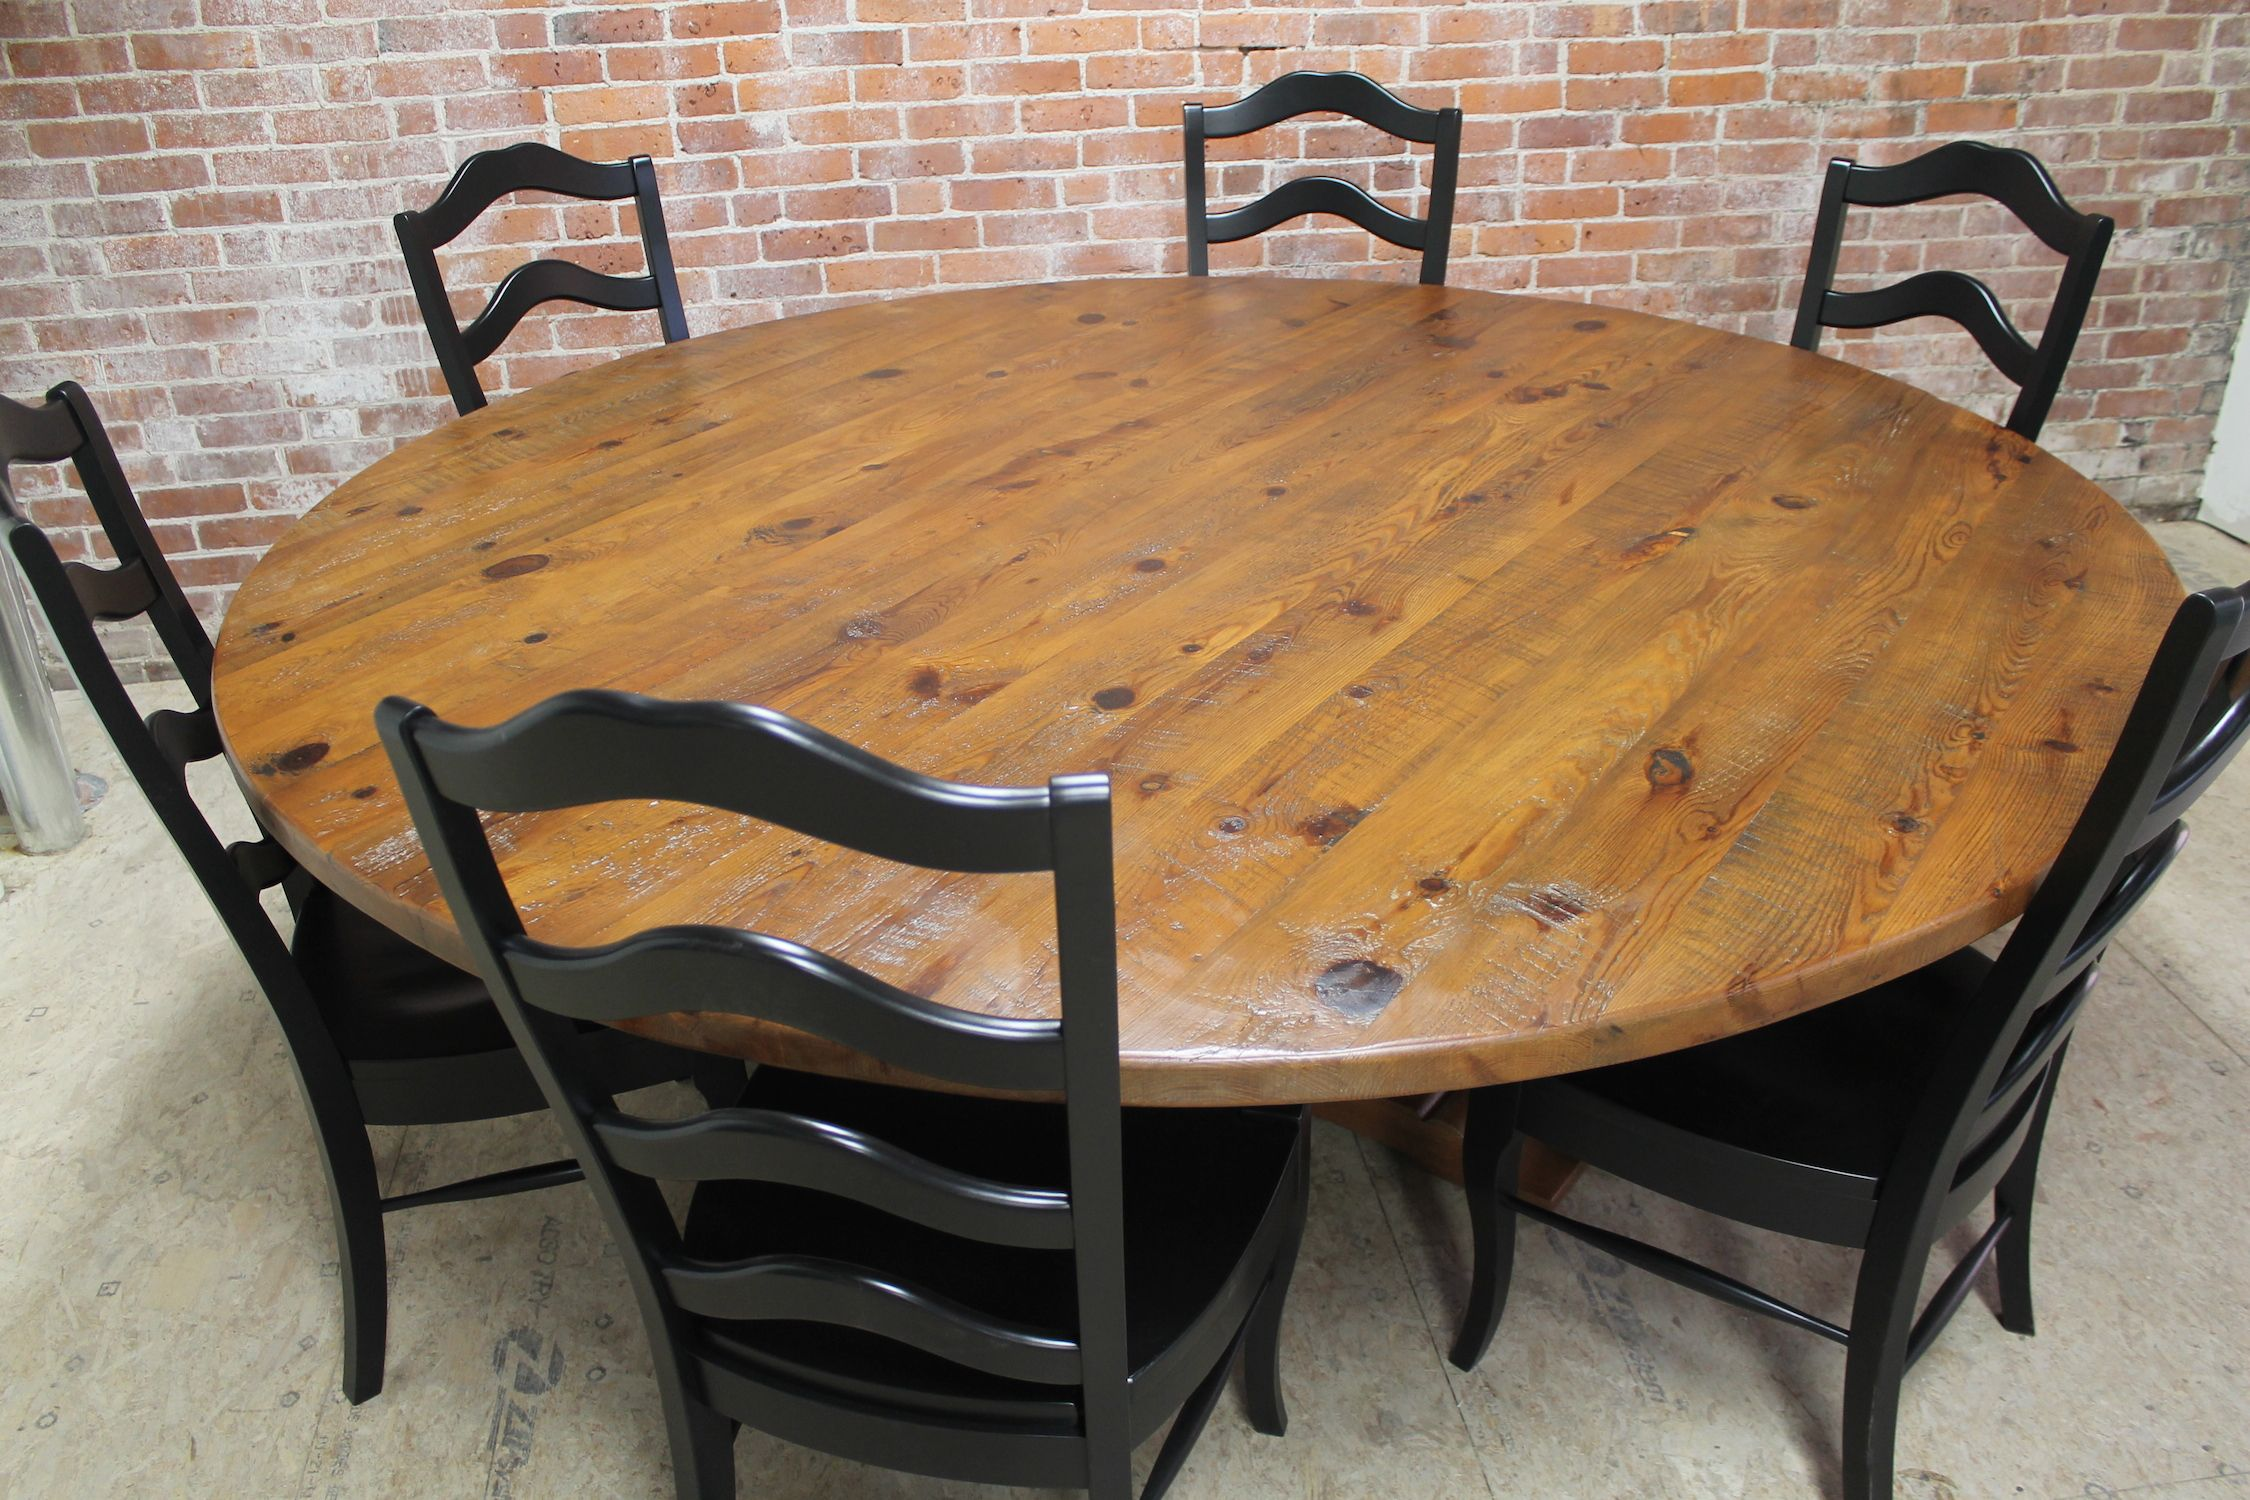 Round Farmhouse Tables  Farm Tables Barn Wood And Tables Simple Large Round Dining Room Tables Design Decoration